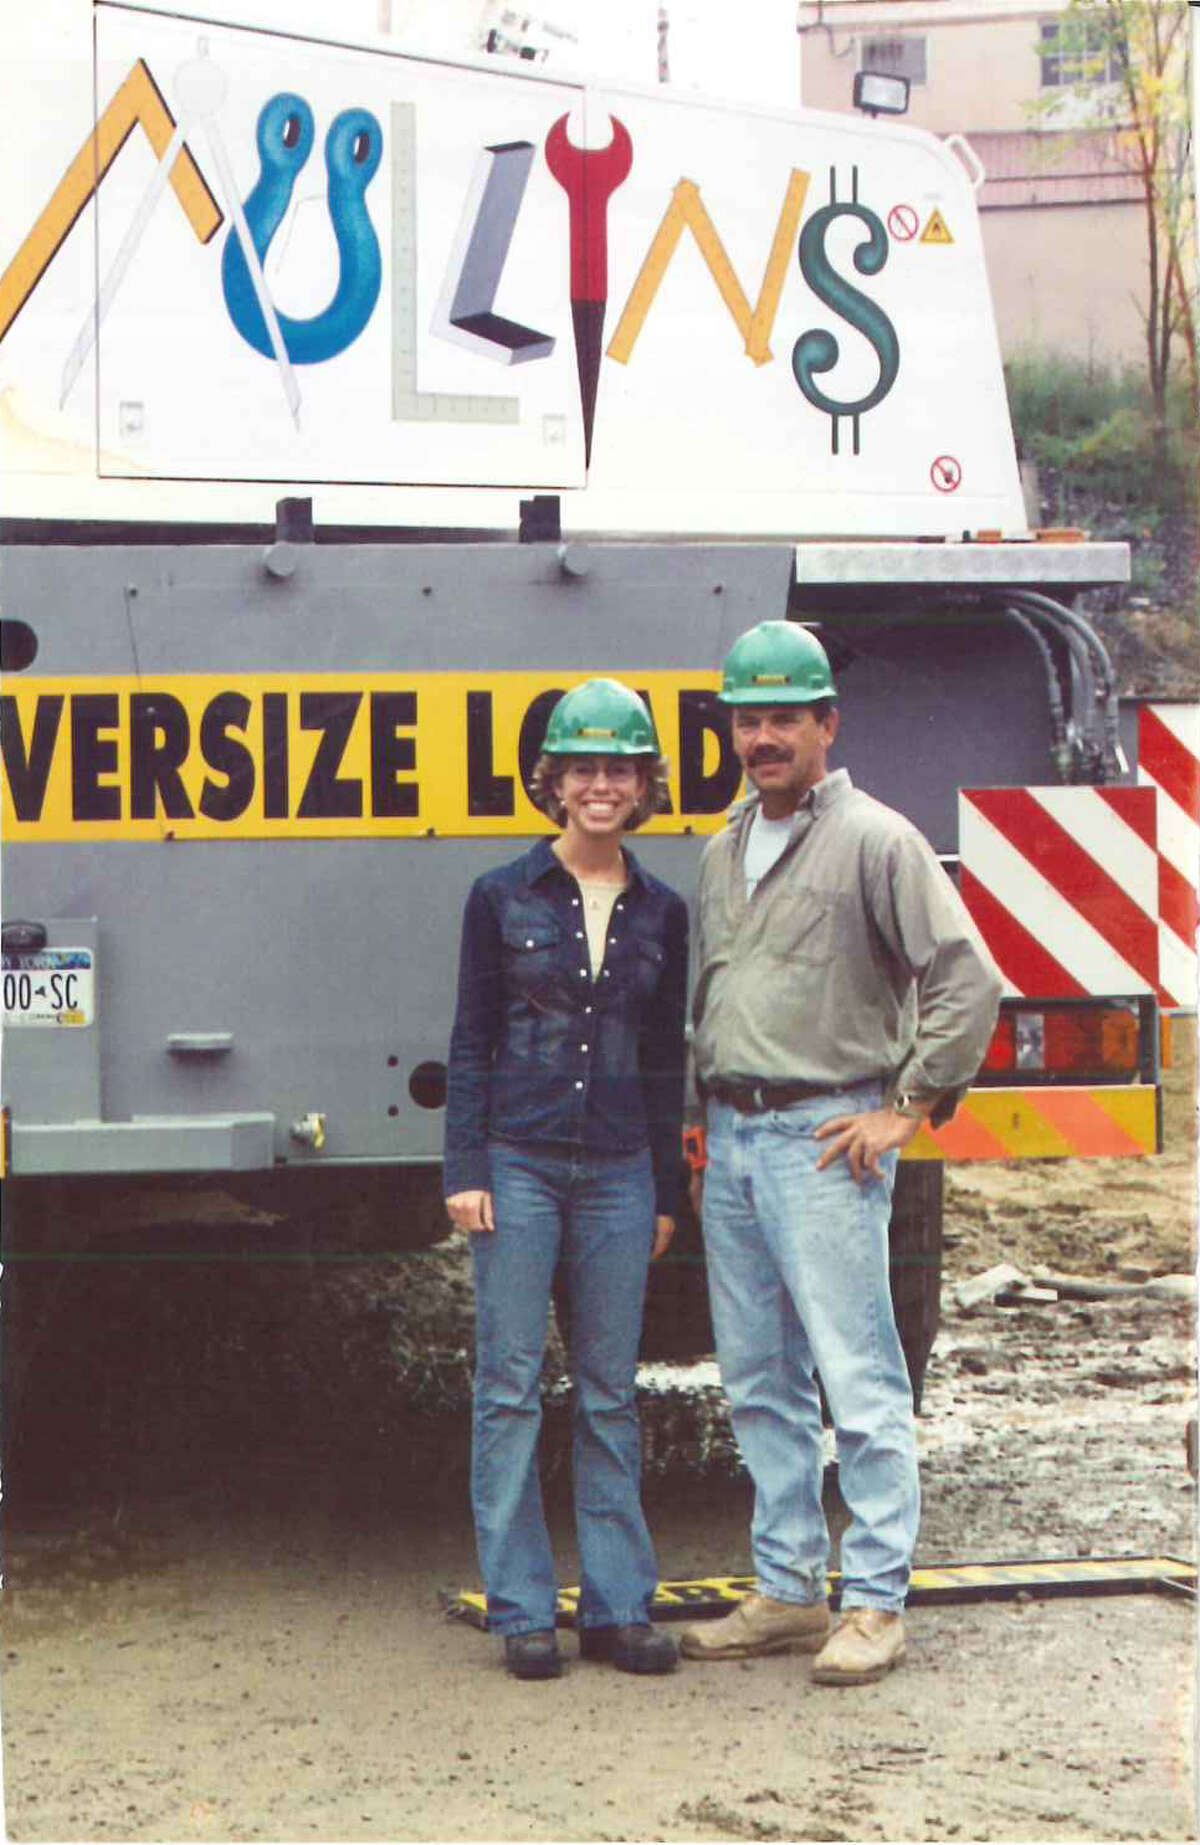 Stefanie Wiley with her father, the former owner of the business. (Courtesy Stefanie Wiley)